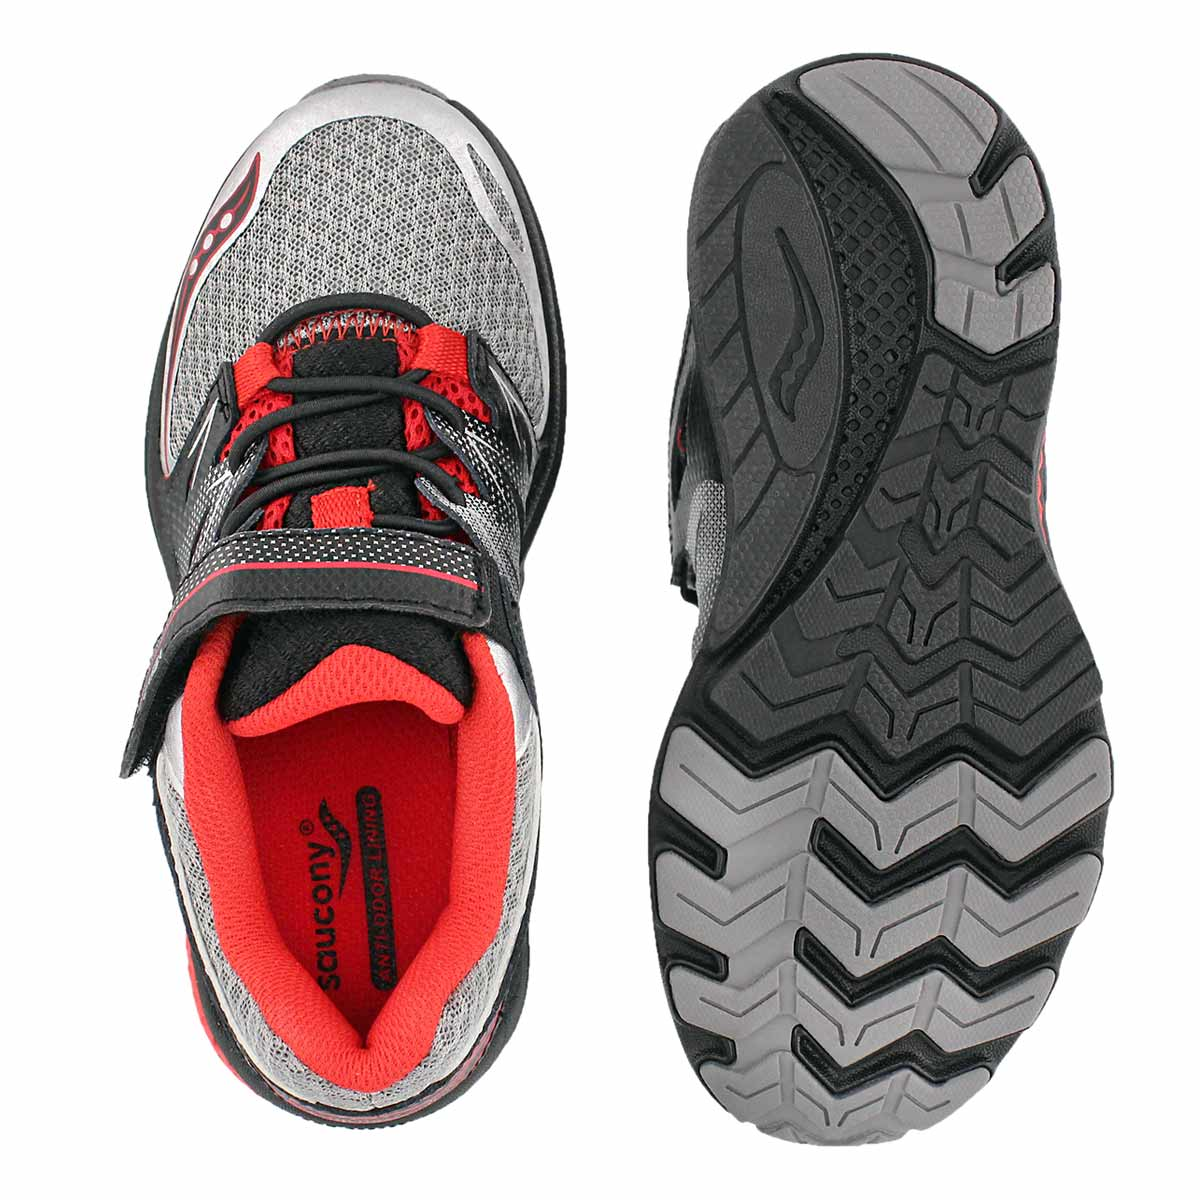 Bys Zealot 2 gry/red running shoe